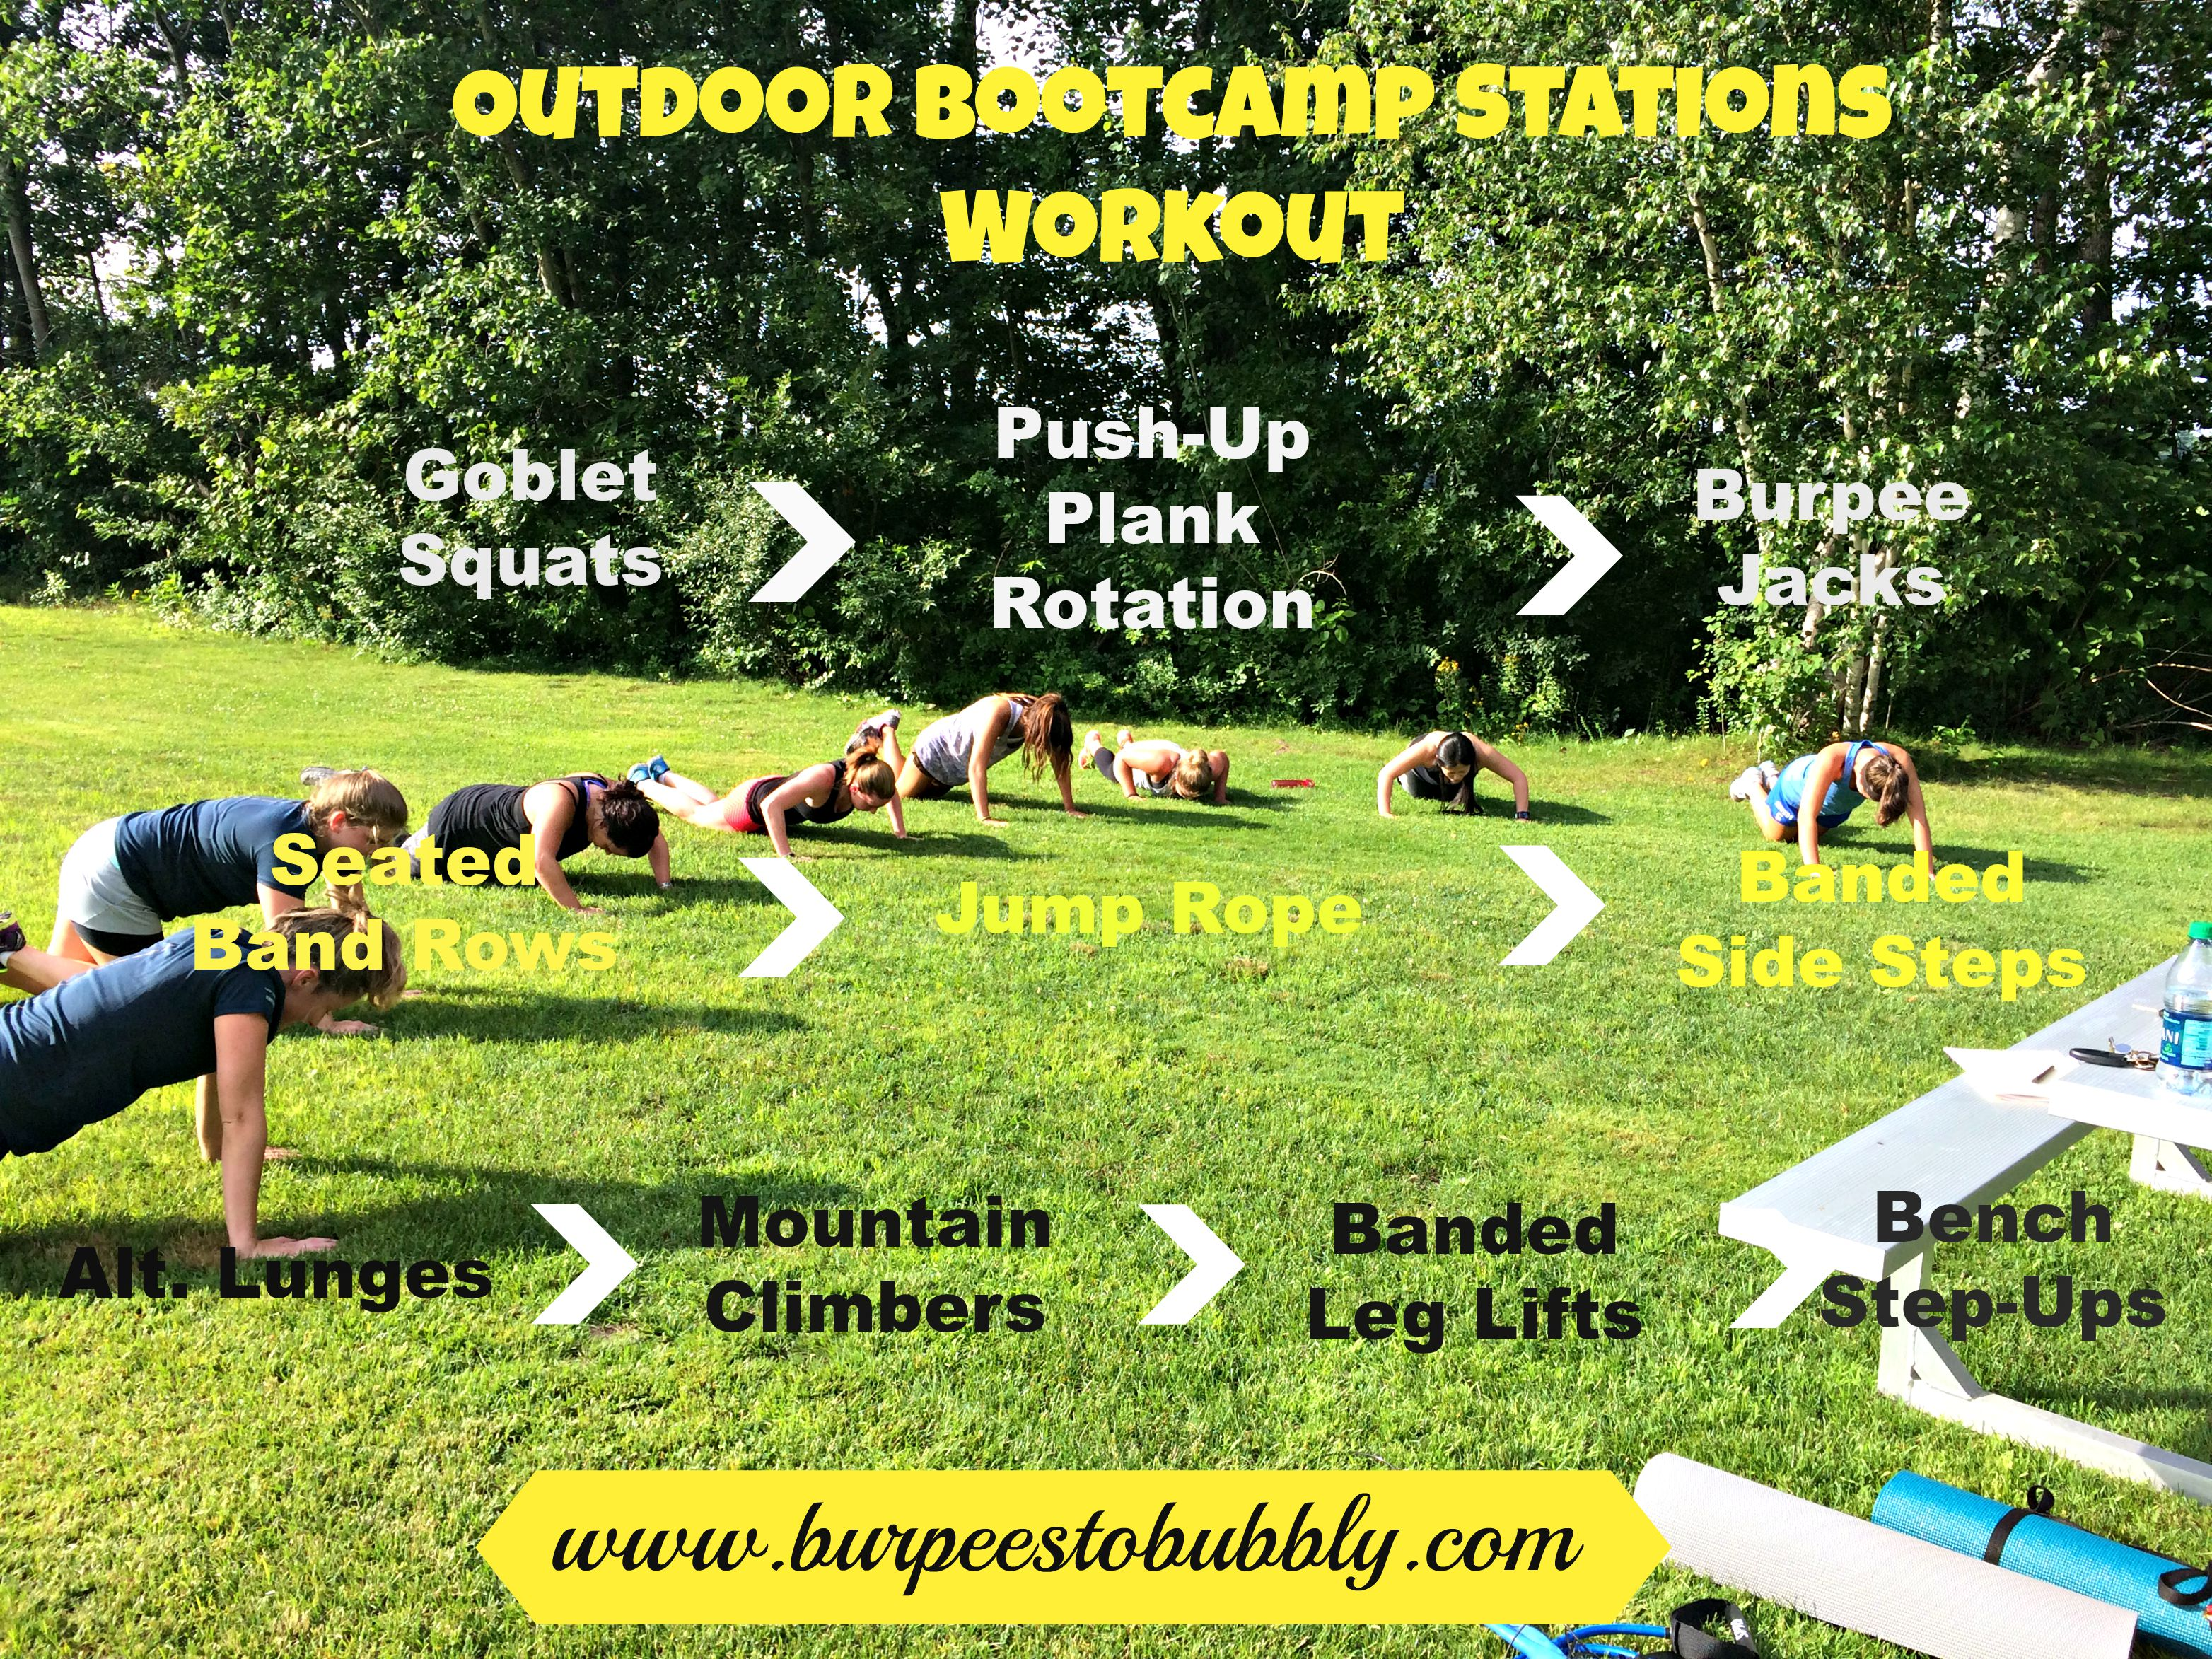 Wednesday Workout Outdoor Bootcamp Stations Workout